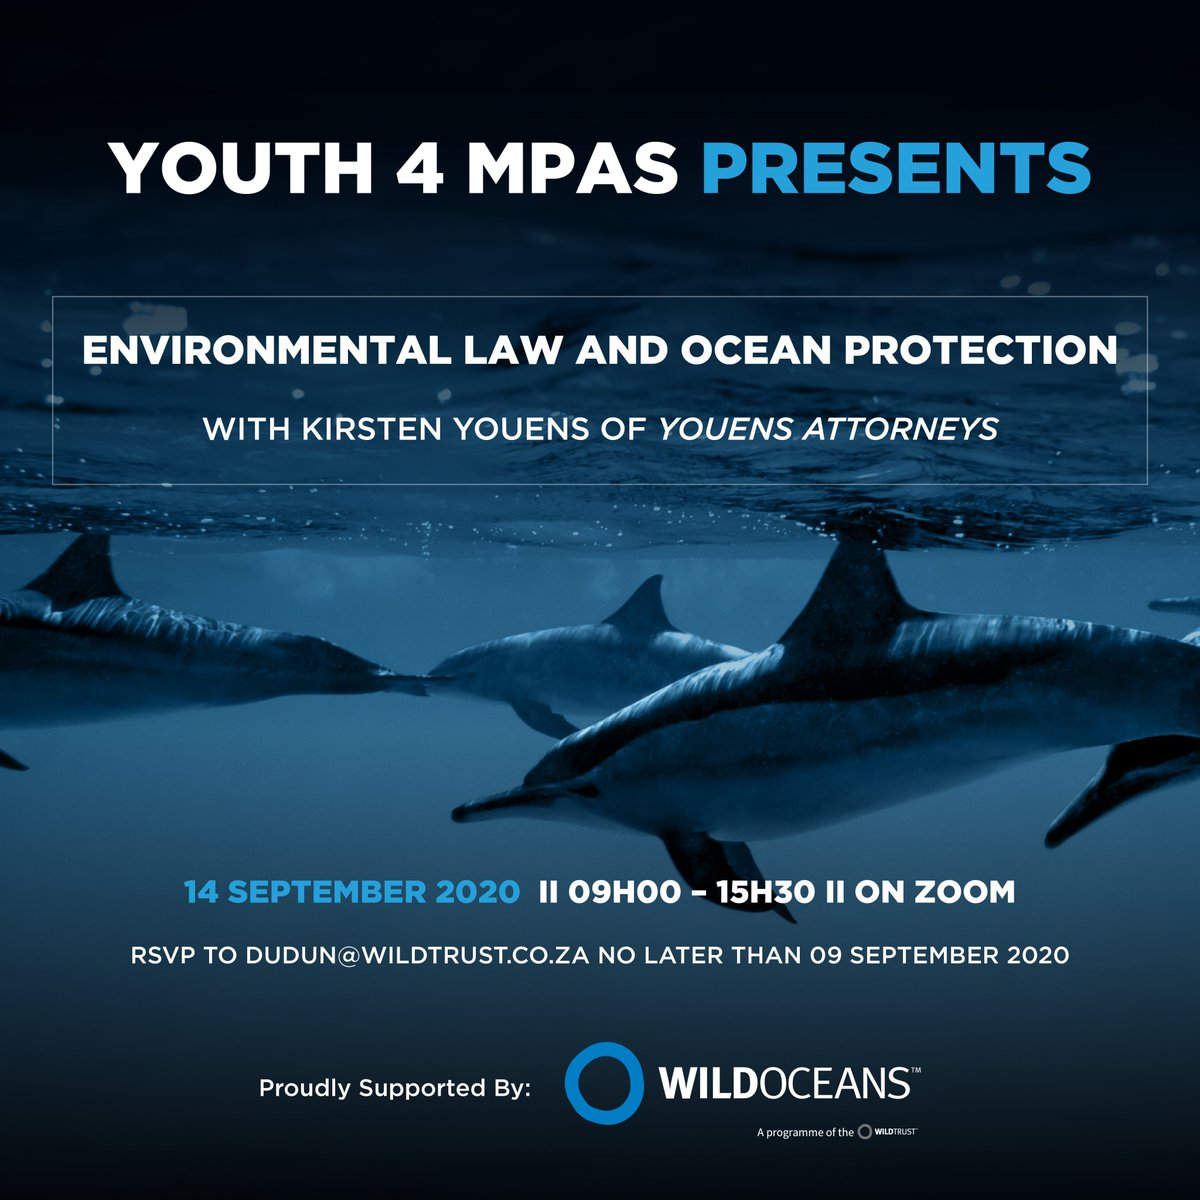 Today we have over 50 youth attending an Environmental Law workshop with Attorney @kirstenyouens and @WILDOCEANSSA.  If you signed up last week, make sure you jump online and get involved. https://t.co/nzJTL84598